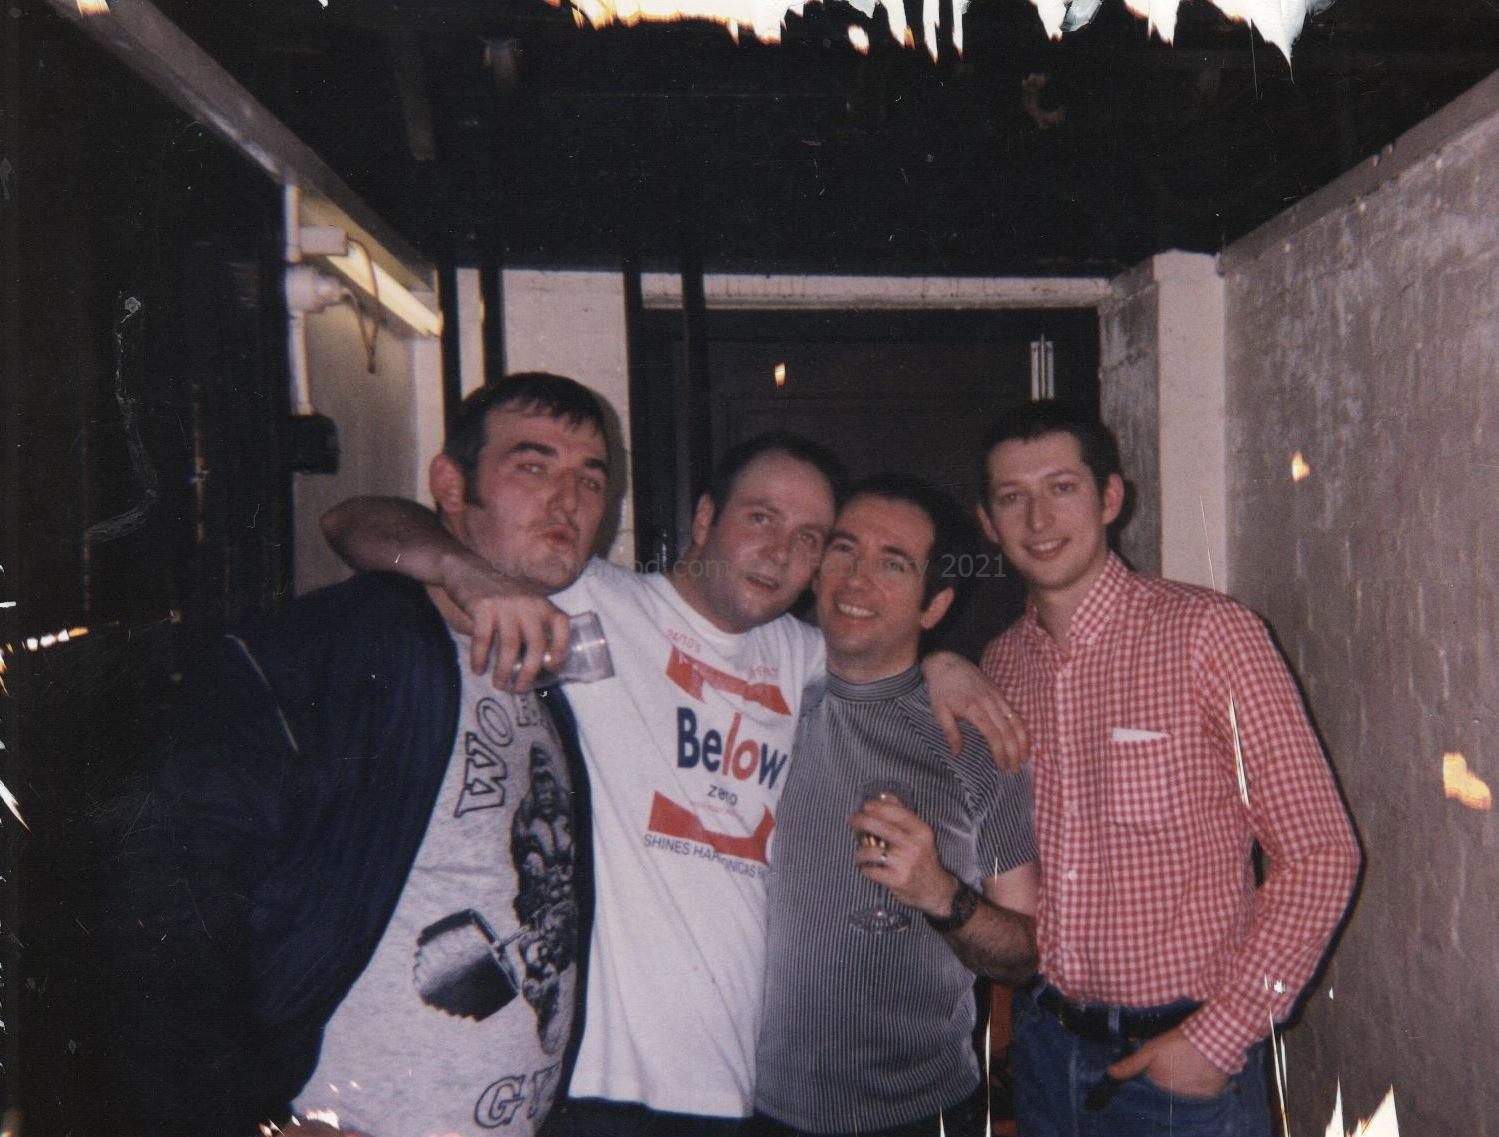 Paul Hallam, Pete Shelley Of The Buzzcocks & Dave Edwards 1997